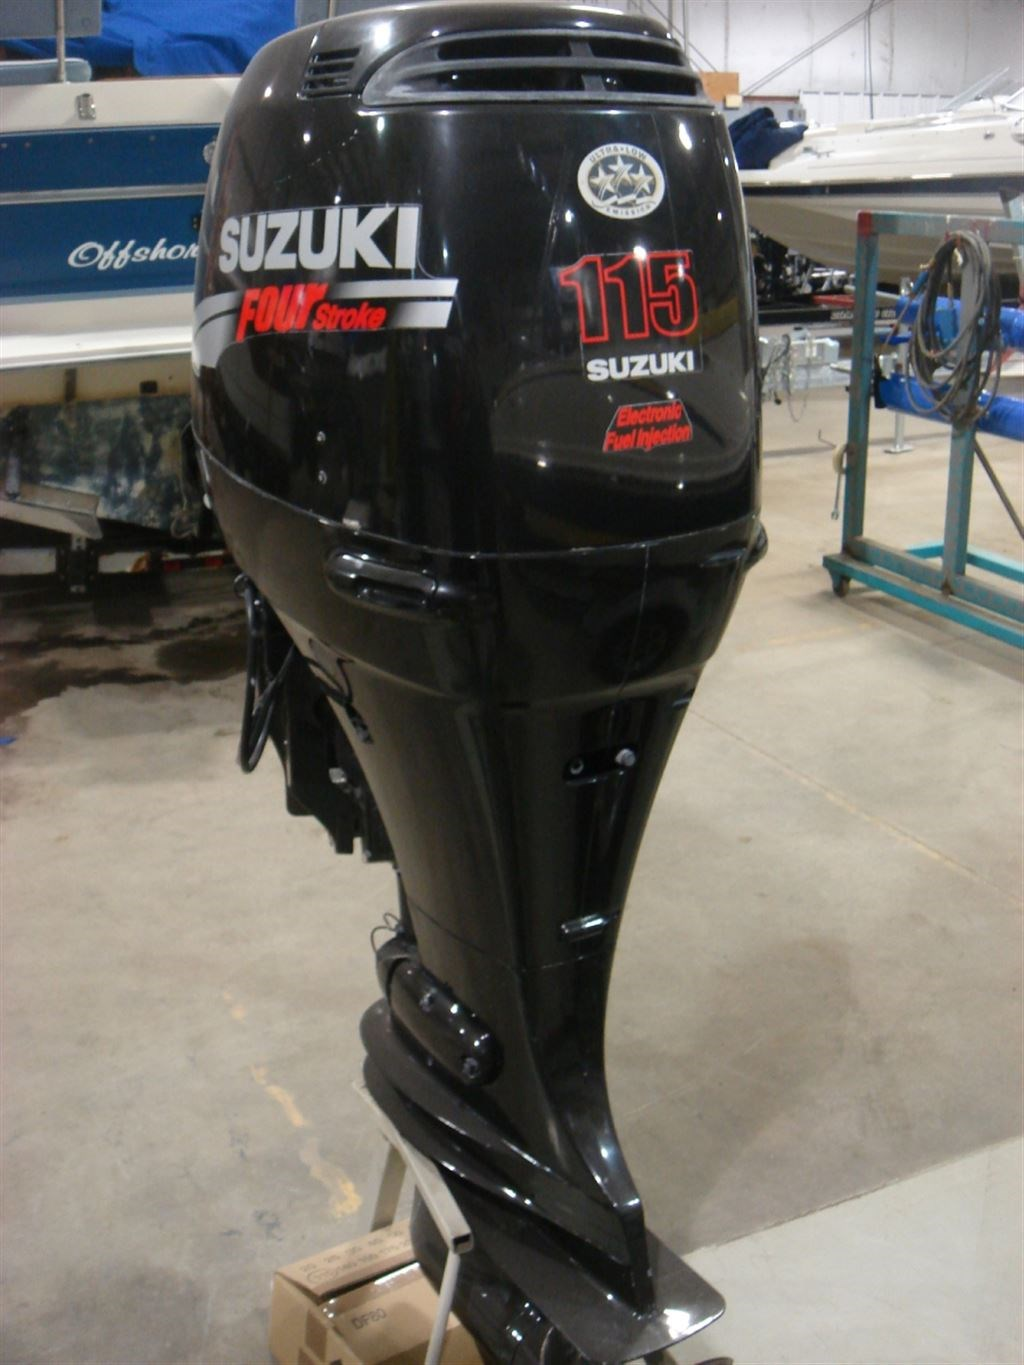 Suzuki Df115atx 2008 Used Outboard For Sale In Ayr